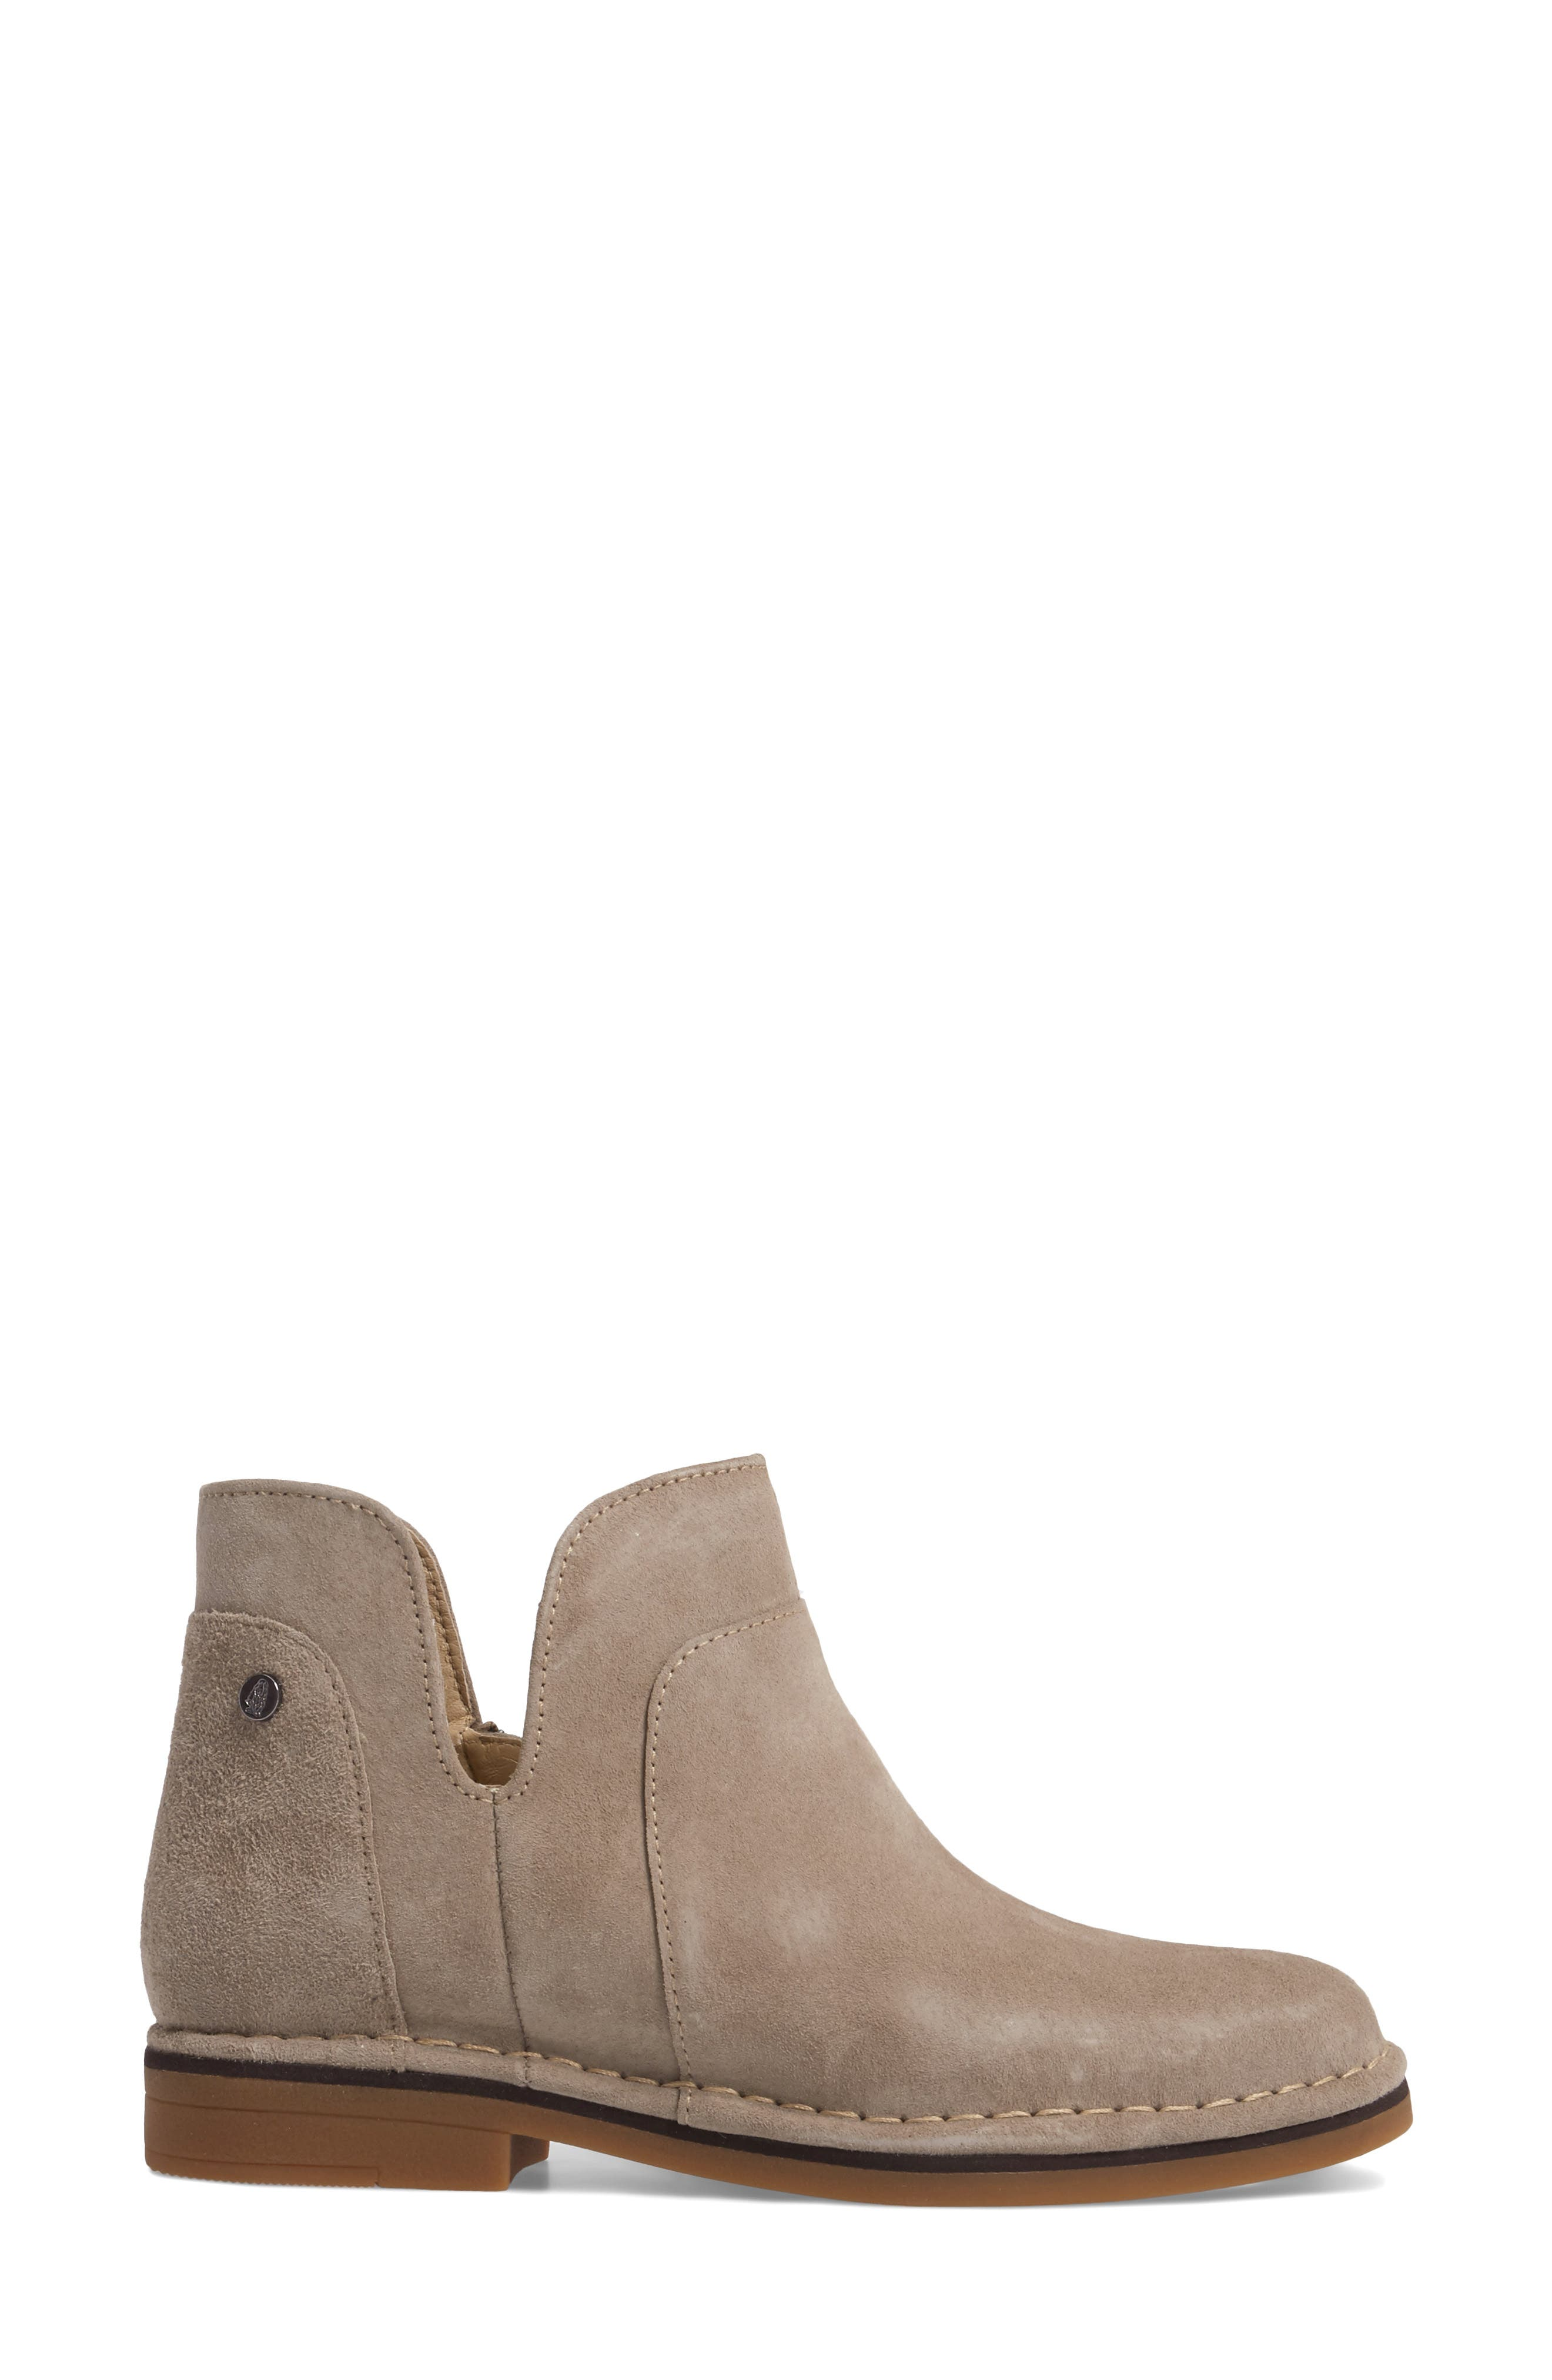 Claudia Catelyn Bootie,                             Alternate thumbnail 8, color,